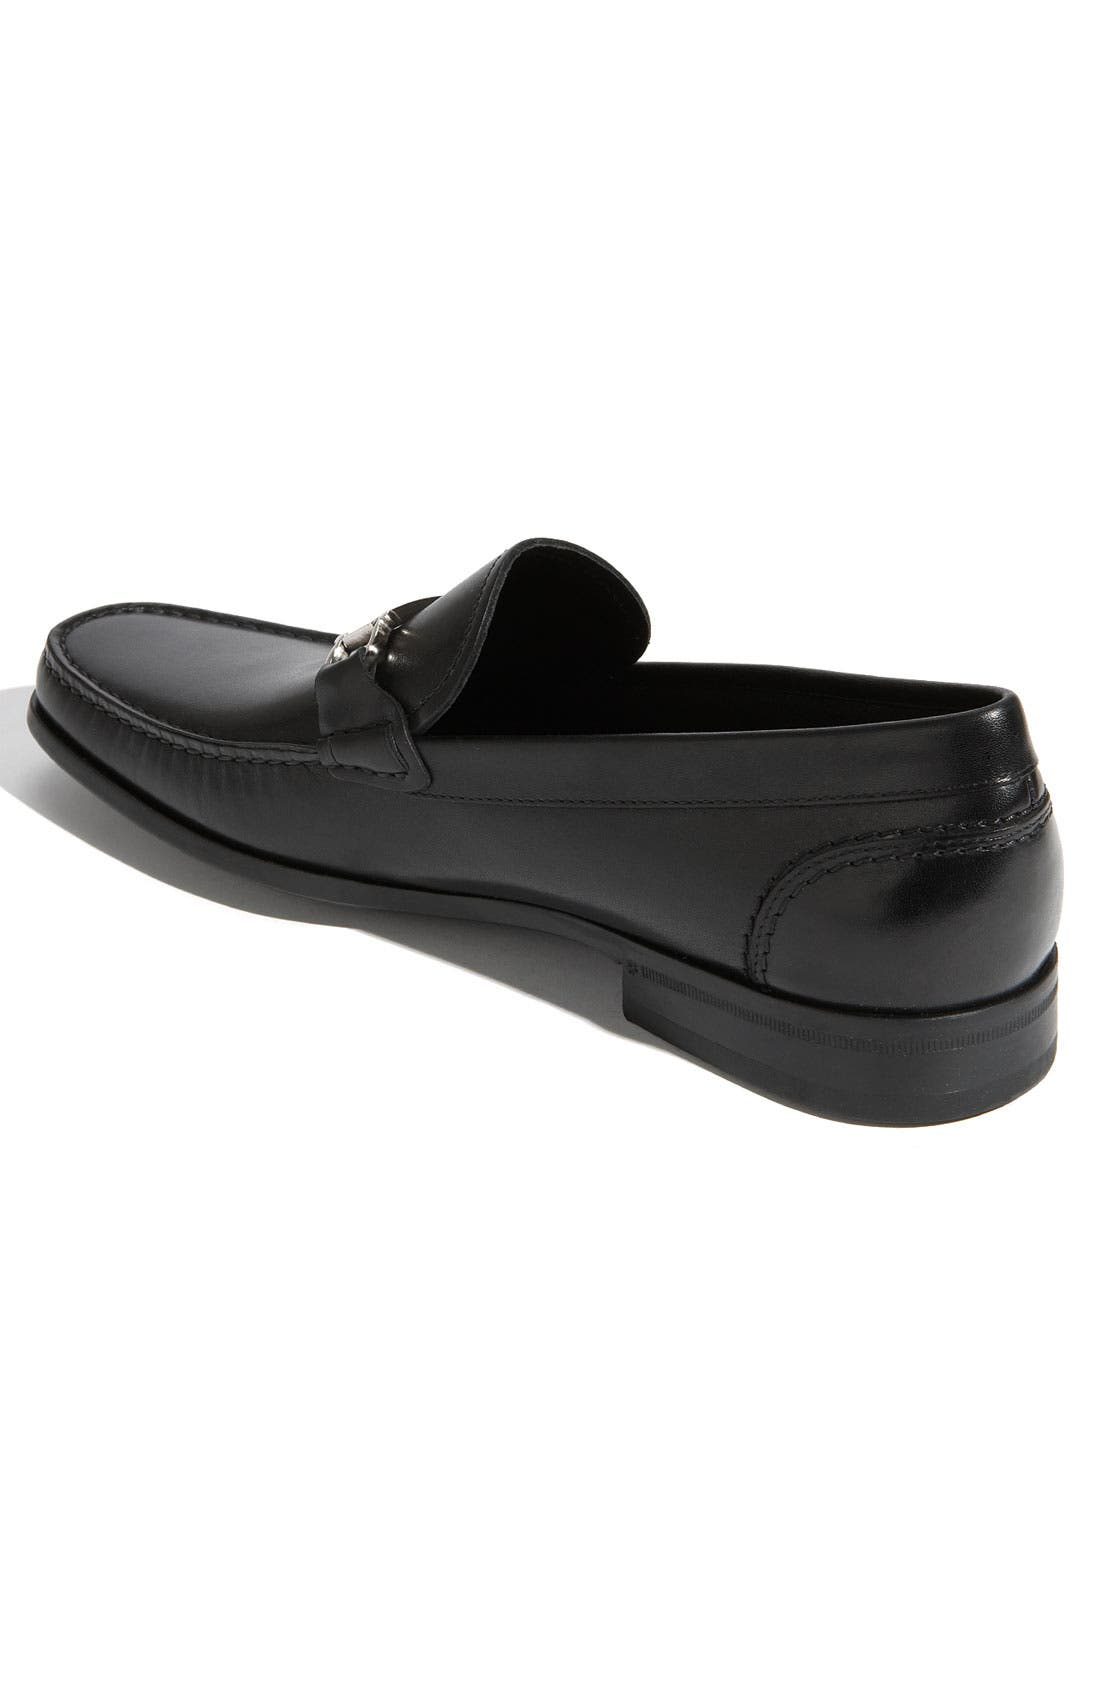 Alternate Image 2  - Salvatore Ferragamo 'Bueno' Loafer